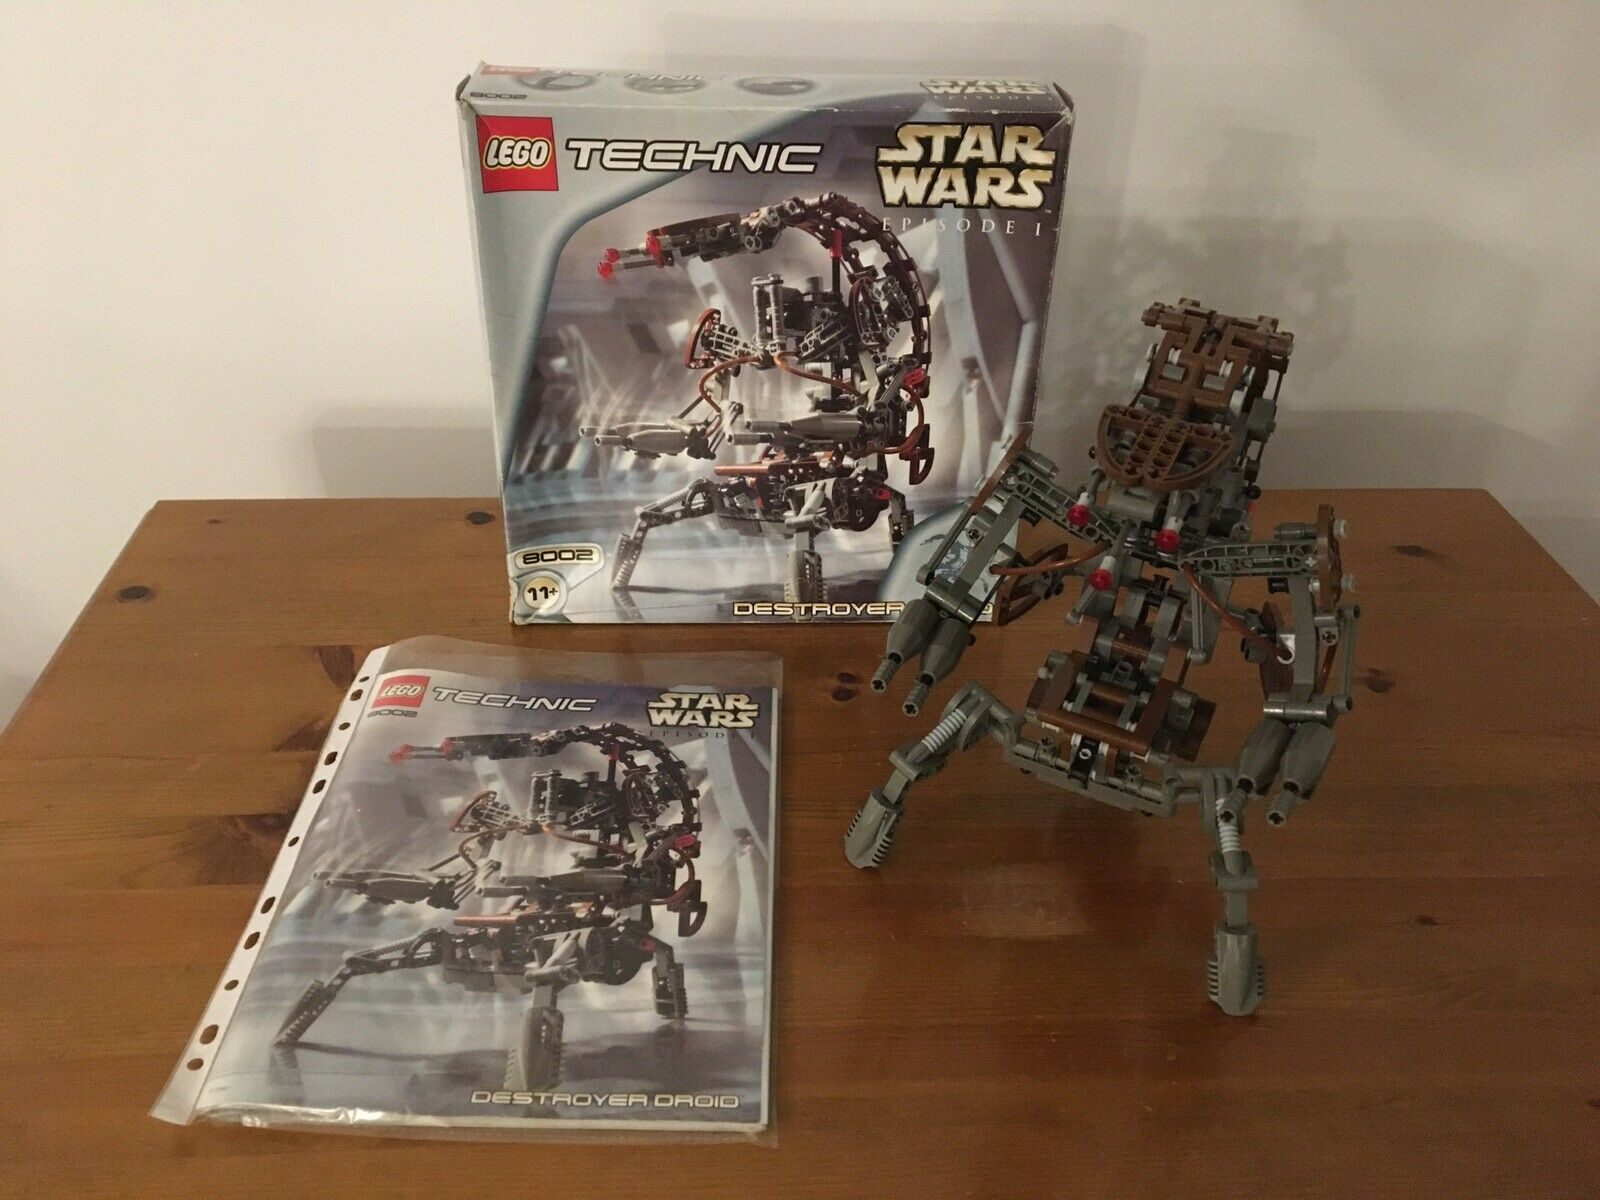 Star Wars Lego 8002  Destroyer Droid 100% Complete & Boxed